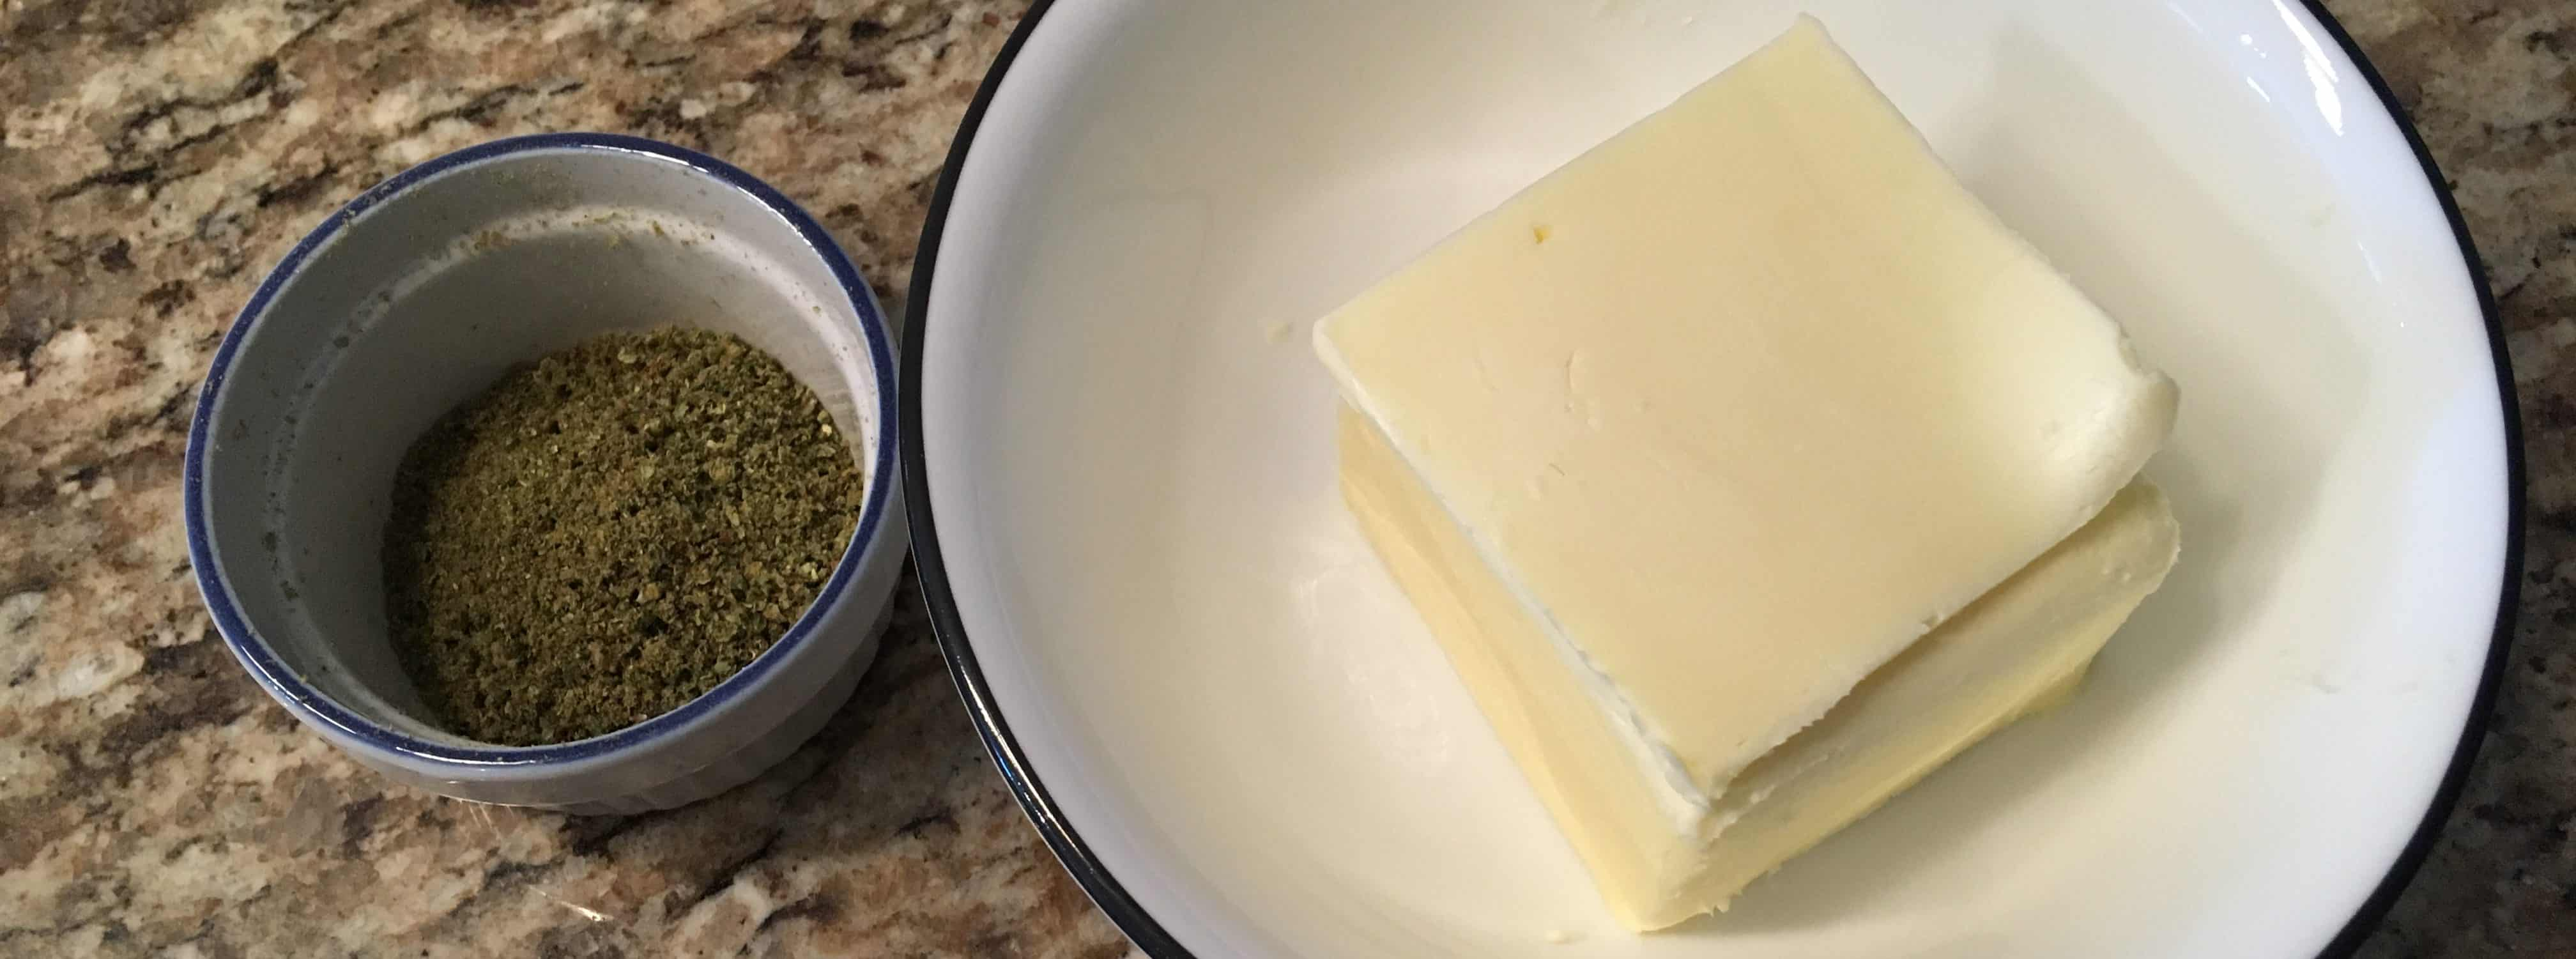 Cannabis and Butter